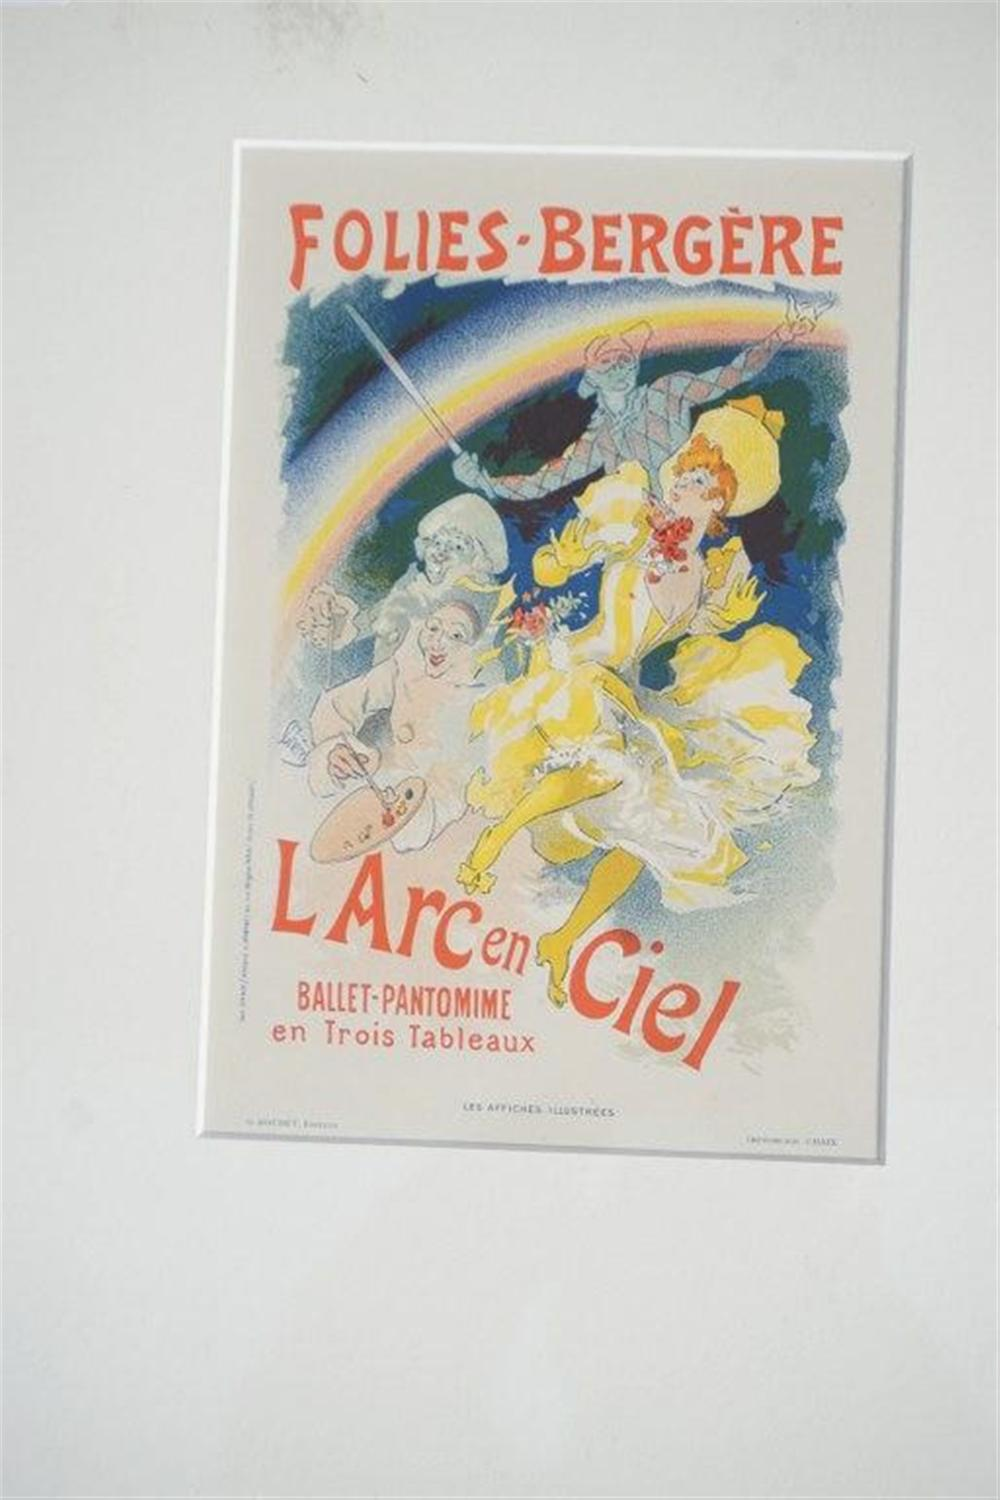 "1896 L ARC EN CIEL FRENCH LITHO POSTER, CHERET, SHEET SIZE 8 3/4"" X 12 1/4"", EXCELLENT CONDITION, SHRINK WRAPPED AND MATTED , FROM RETIRED DEALERS COLLECTION."